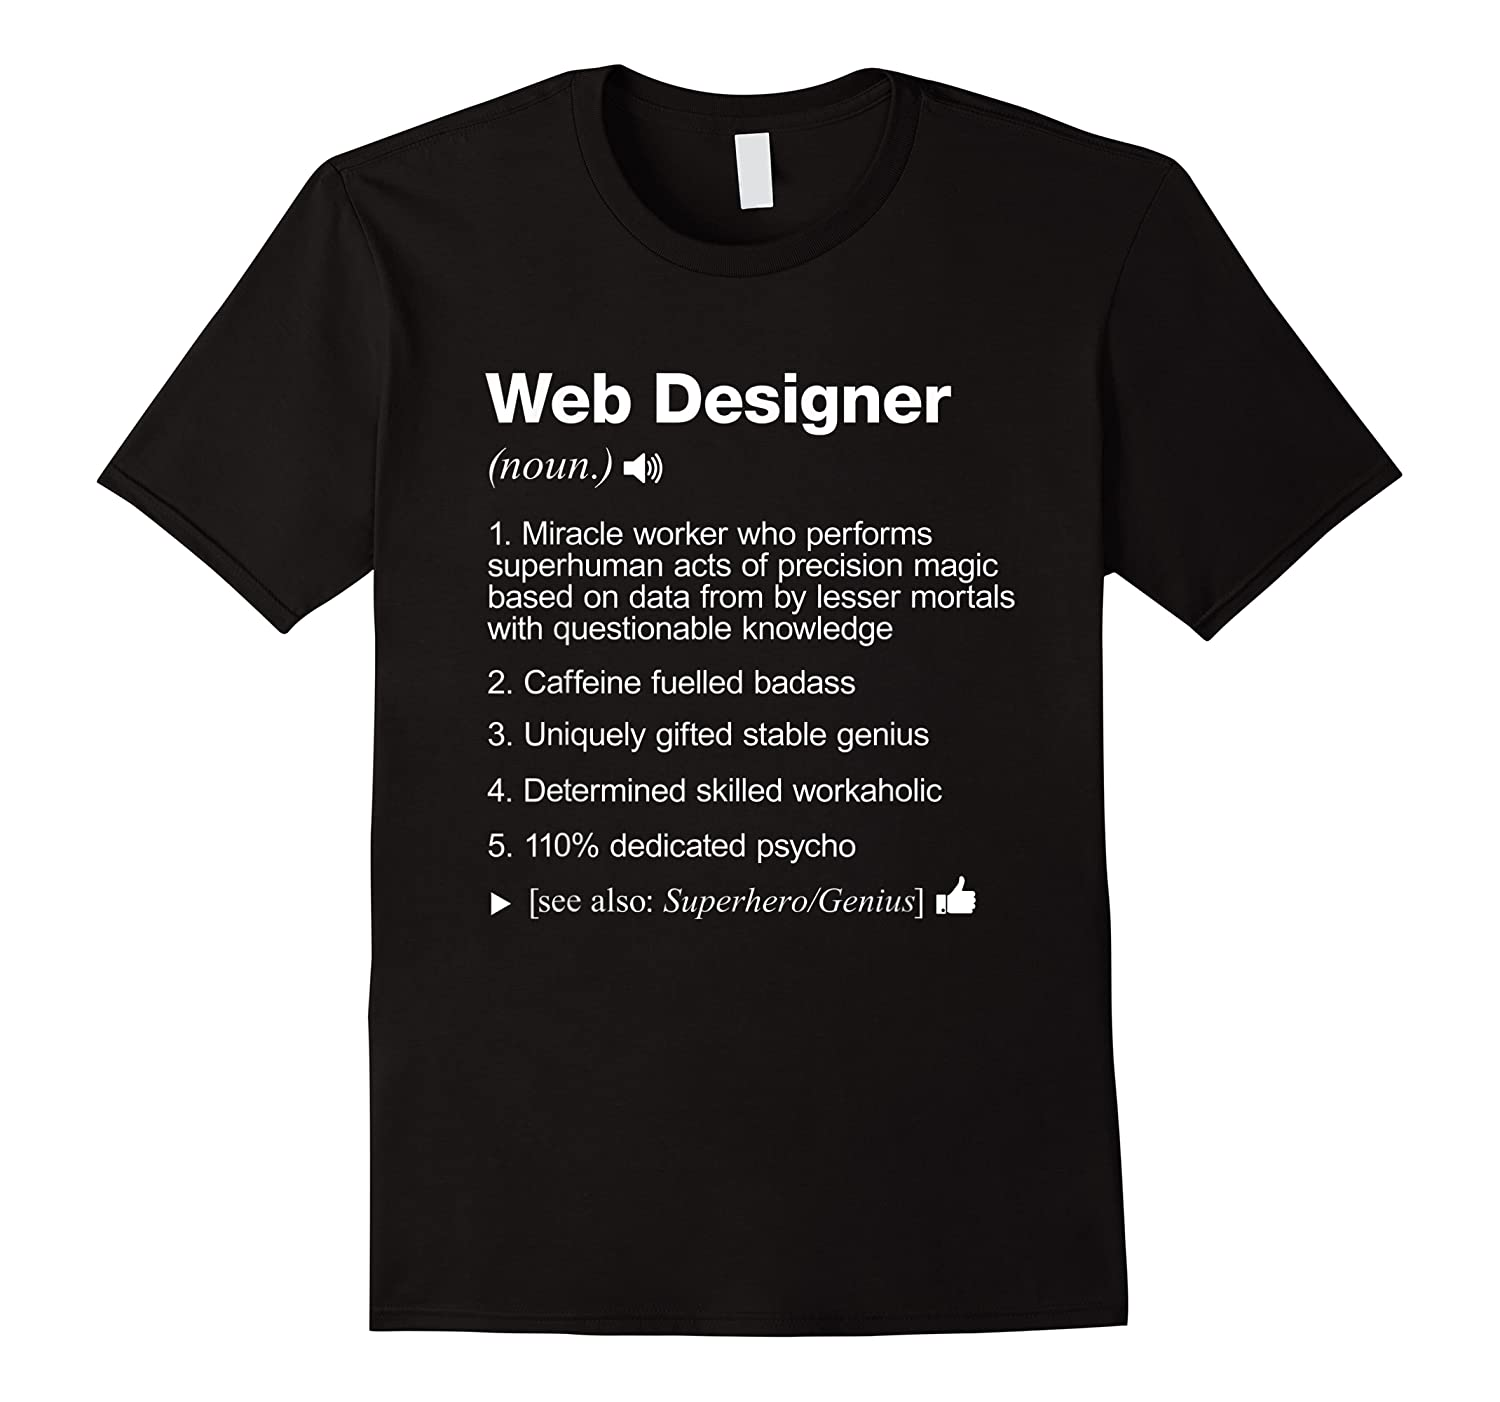 Web Designer Job Definition Meaning Funny Shirts